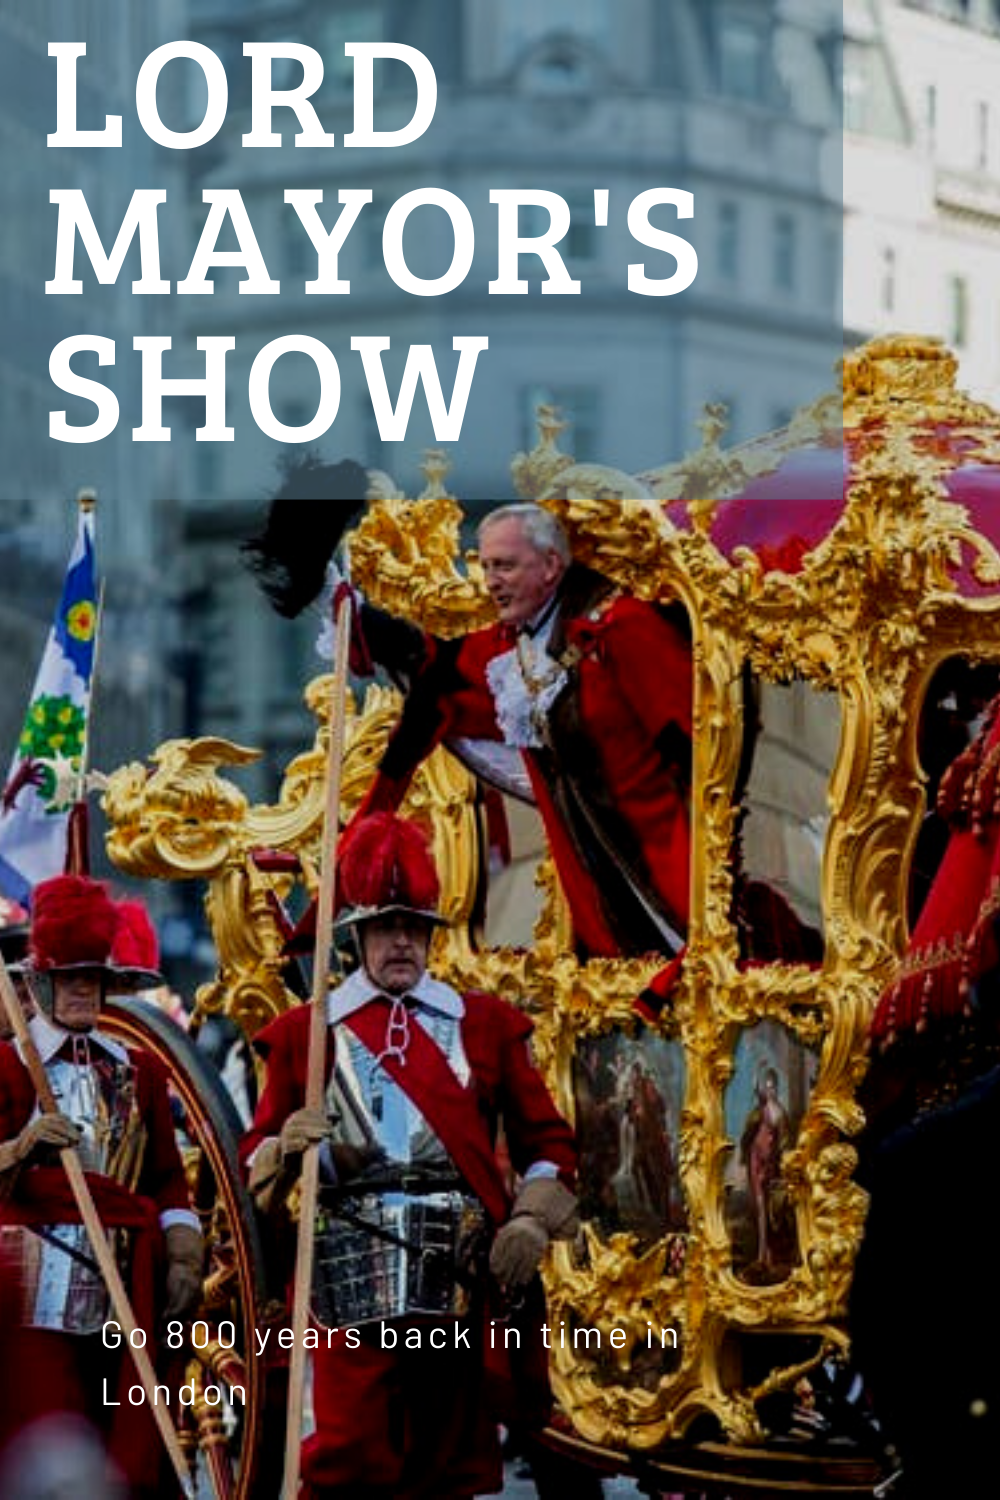 Wonder what the Lord Mayor's Show in London is? The Lord